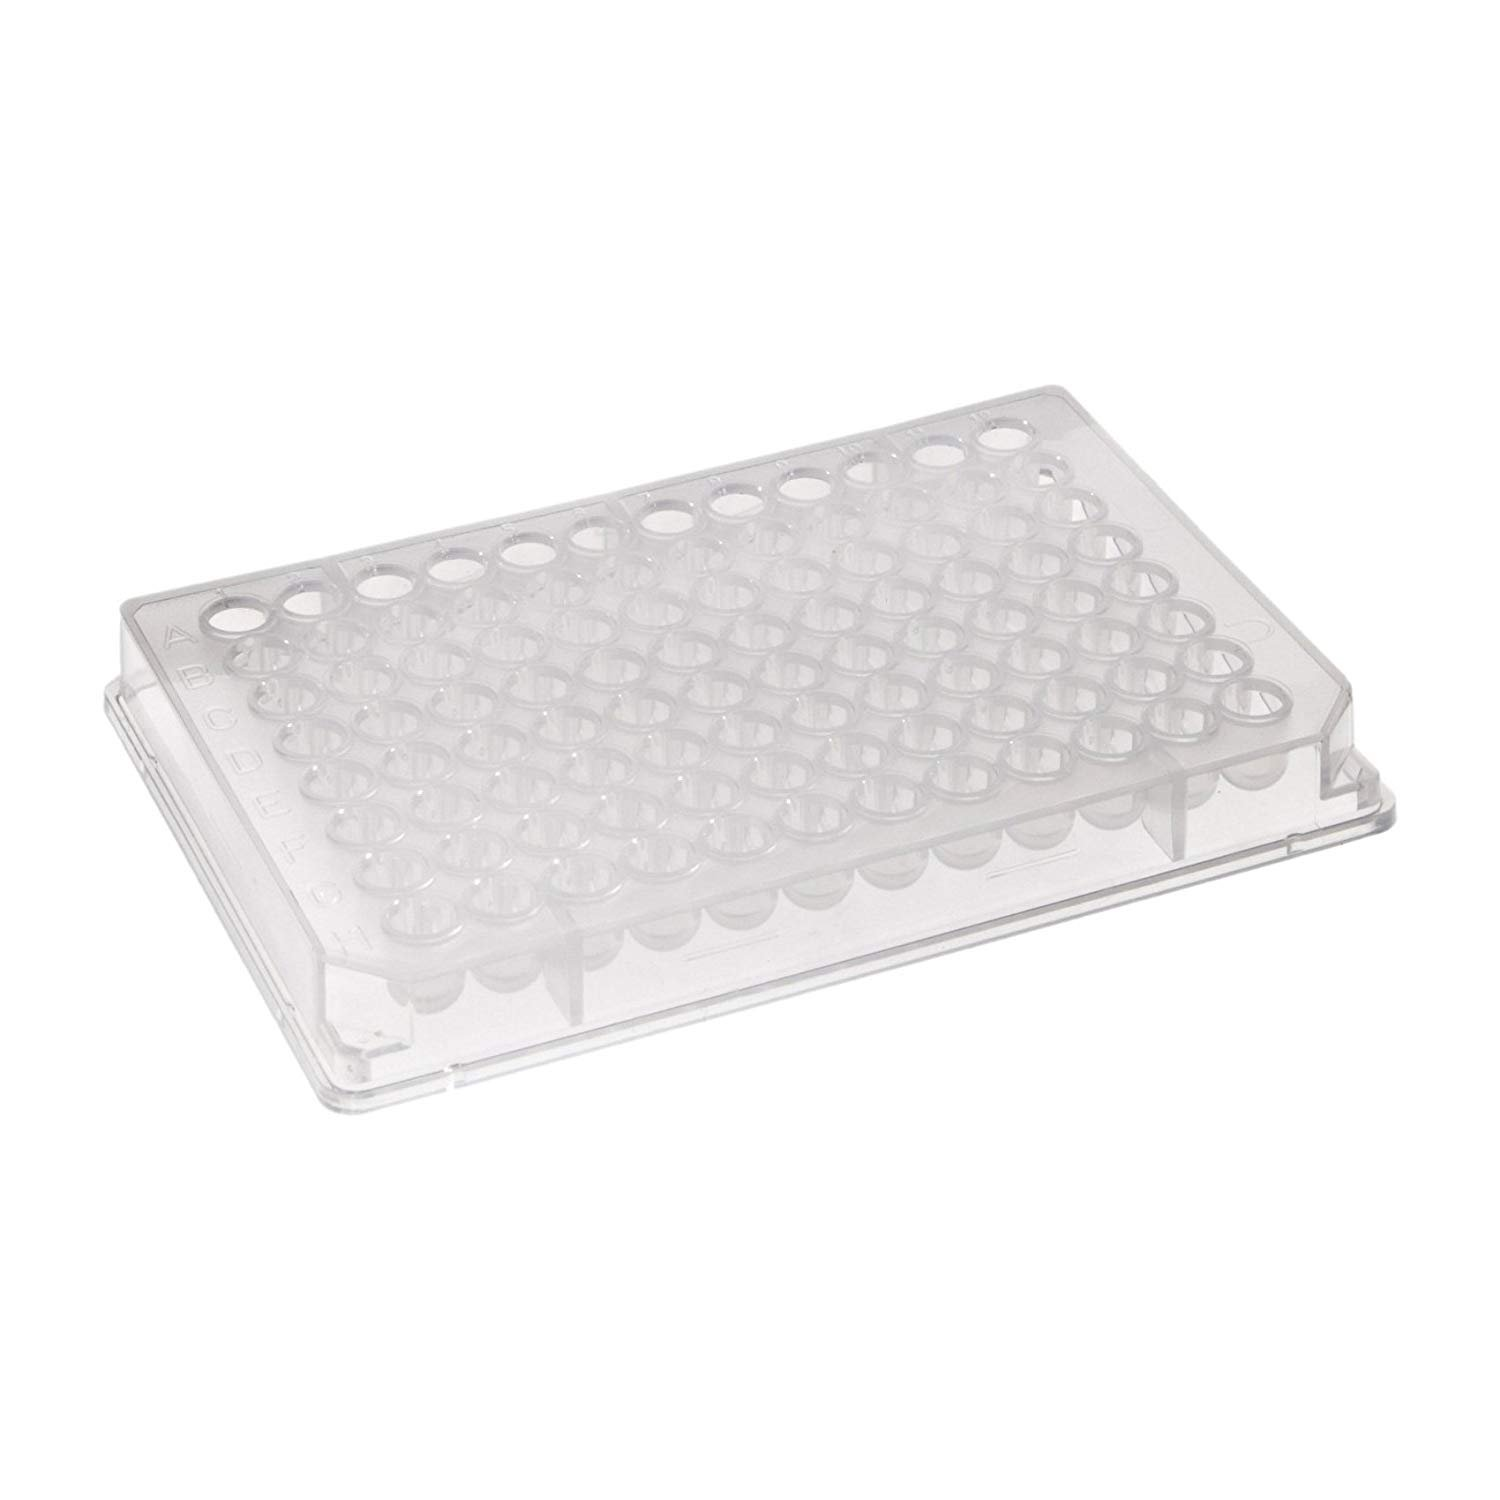 Iwaki 3590 Polystyrene Flat Bottom 96 Well High Bind EIA/RIA Clear Microplate, Without Lid (Case of 99) by Iwaki